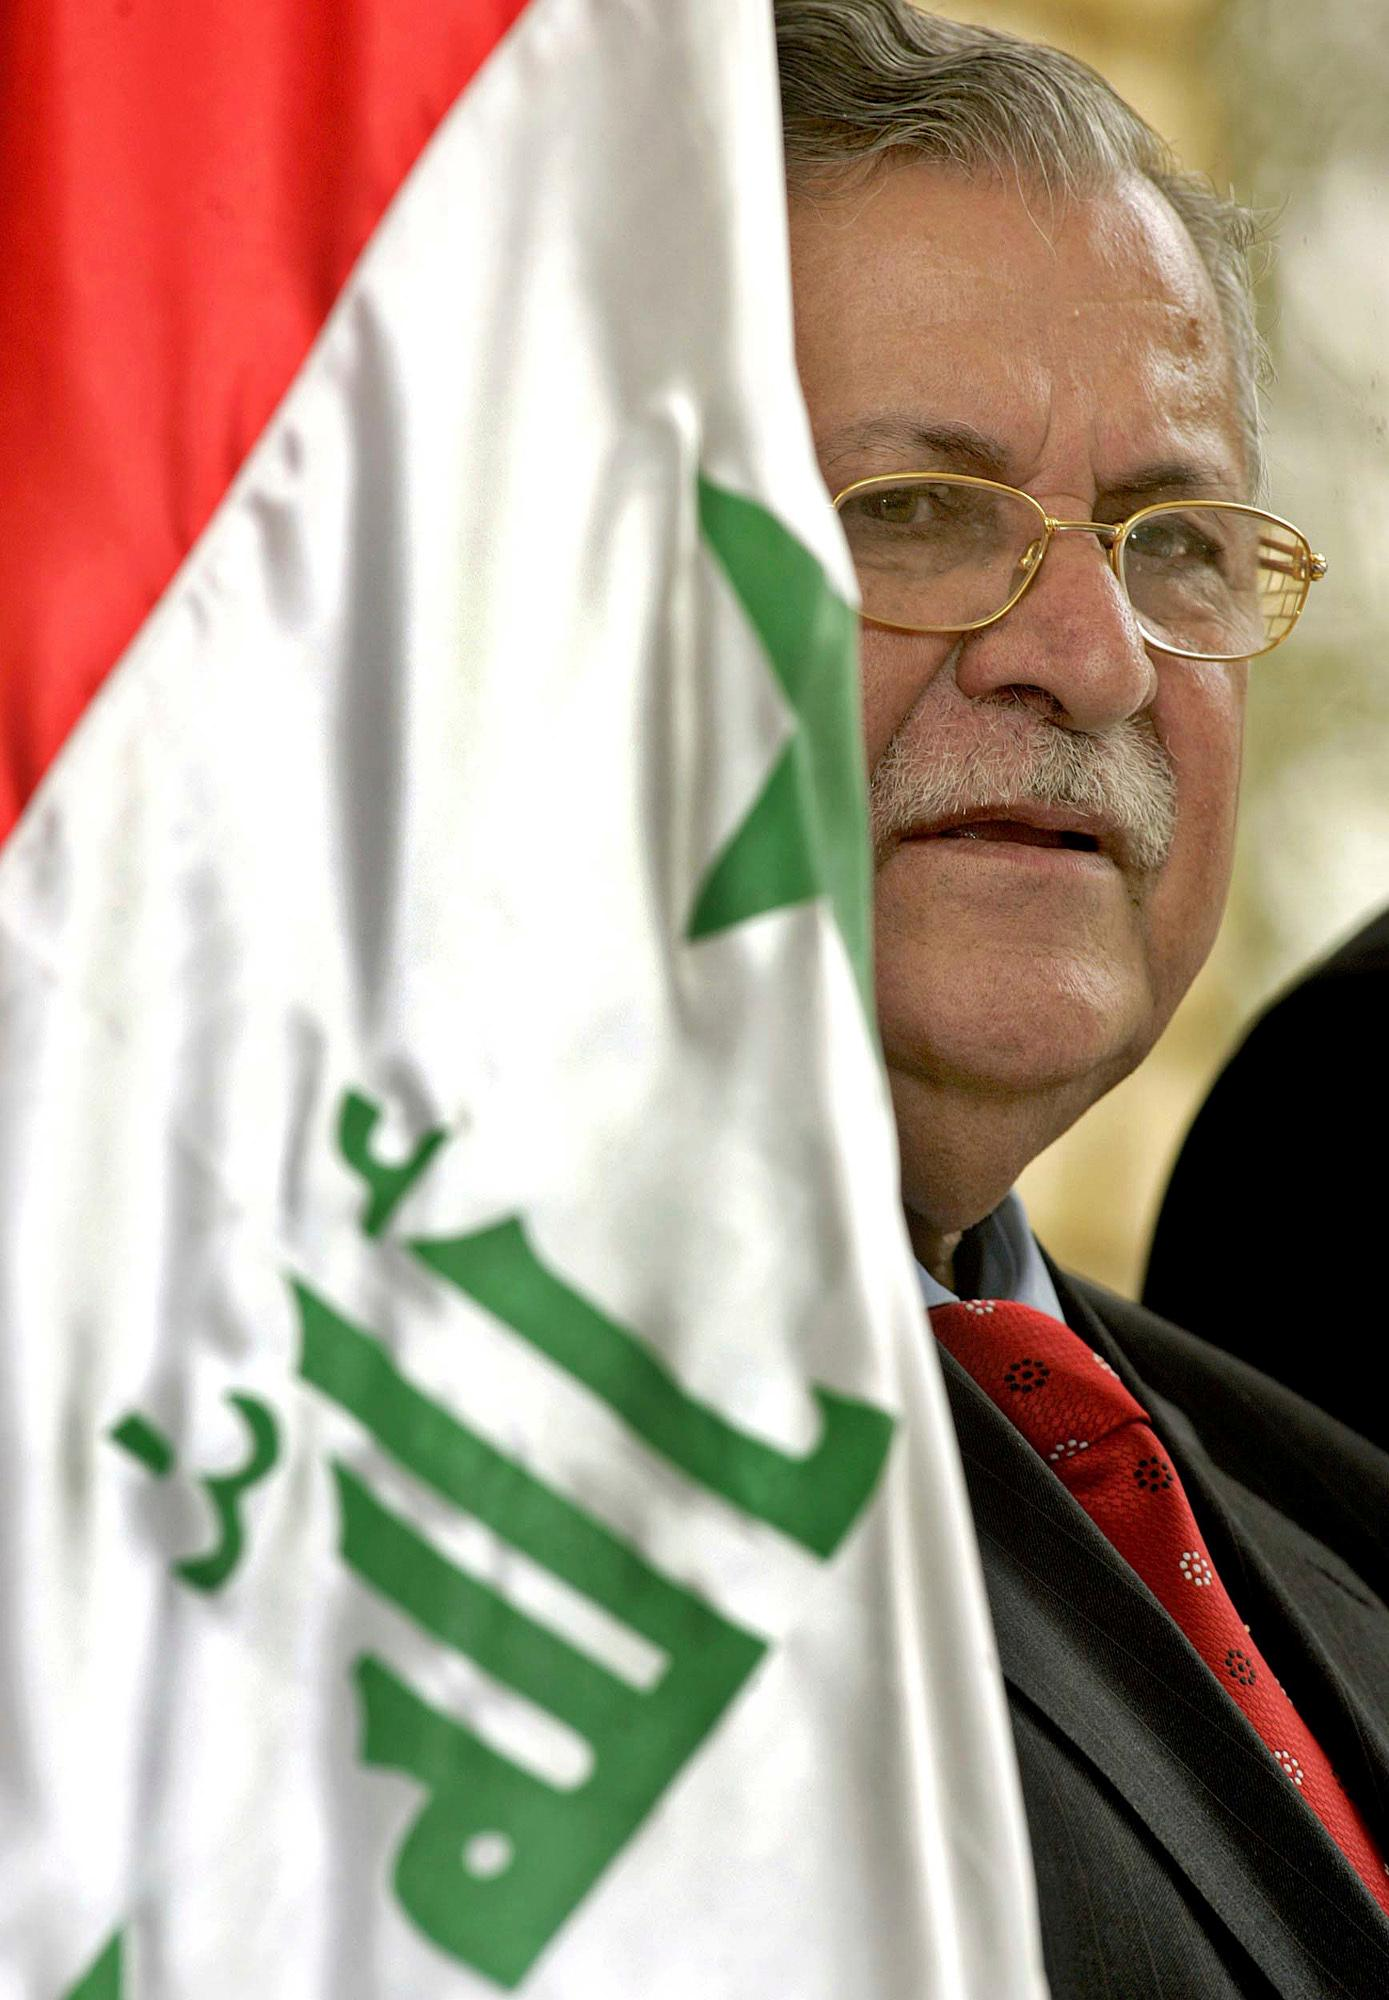 FILE - In this July 23, 2005, file photo, Iraqi President Jalal Talabani peers from behind the Iraqi flag during a press briefing with US Ambassador to Iraq Zalmay Khalilzadat Talabani's residence in Baghdad, Iraq. Talabani, a lifelong fighter for Iraq's Kurds who rose to become the country's president, presenting himself as a unifying father figure to temper the potentially explosive hatreds among Kurds, Shiites and Sunnis has died in a Berlin hospital at the age of 83. (AP Photo/Liu Jin, Pool, File)